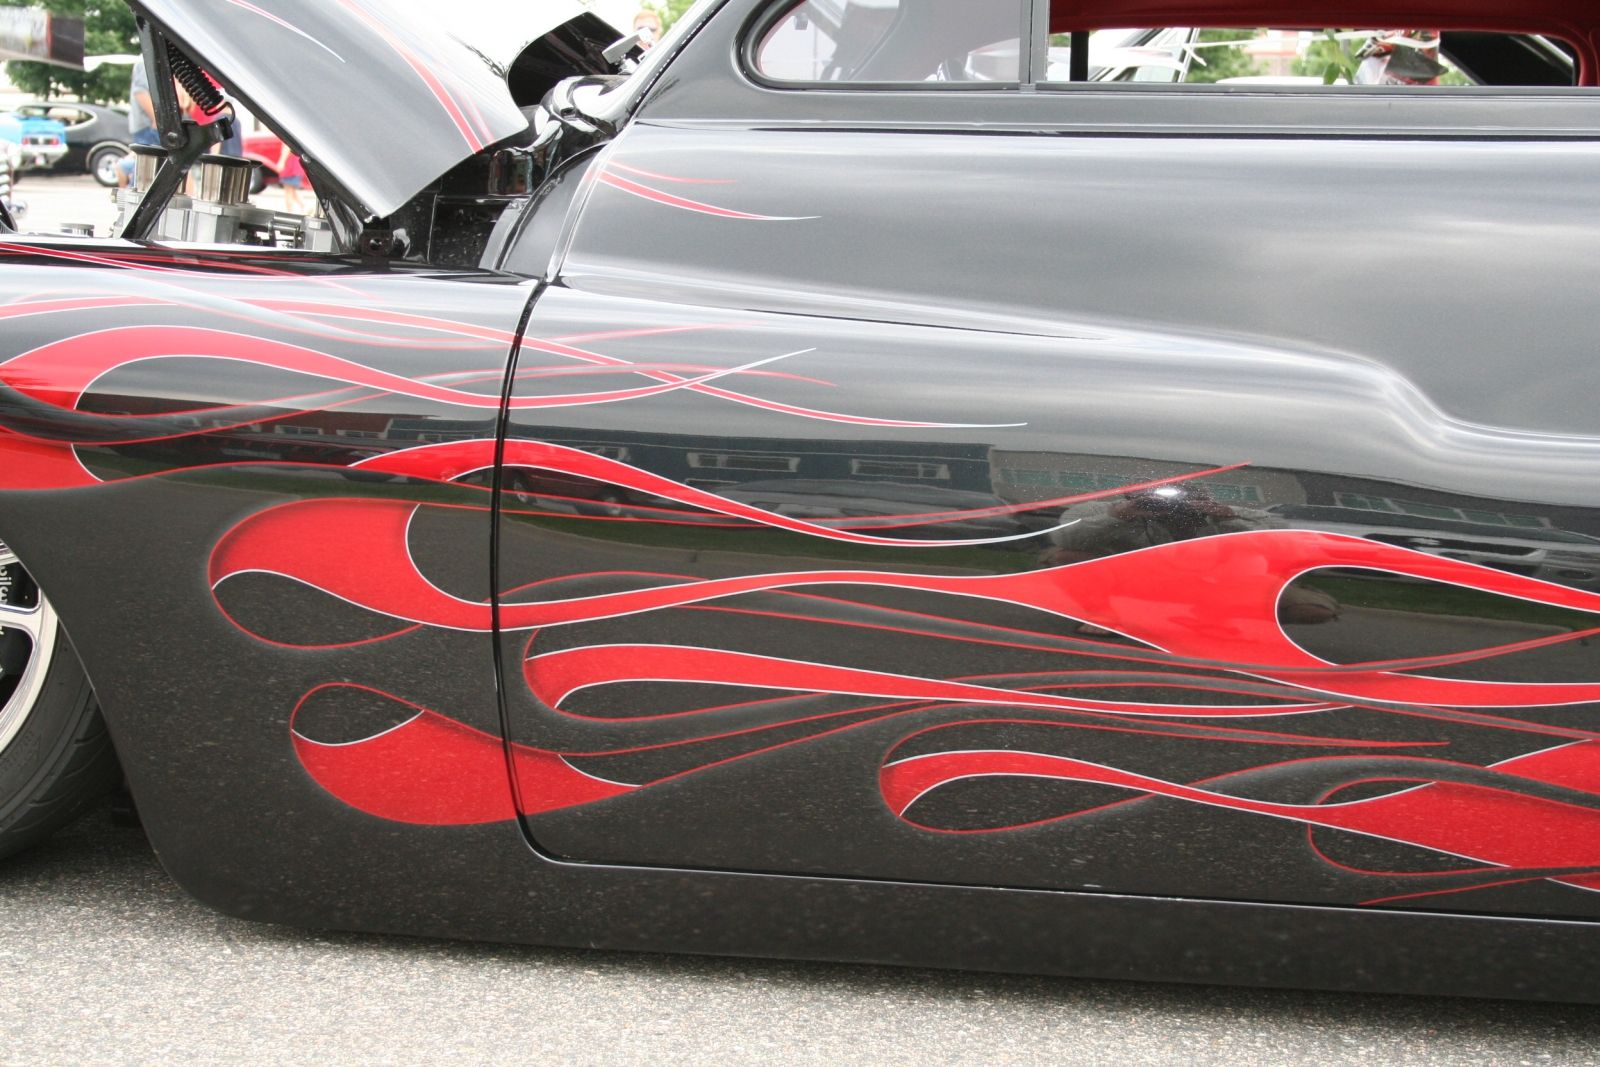 Mercury Lead Sled Black With Flames Only Cars And Cars